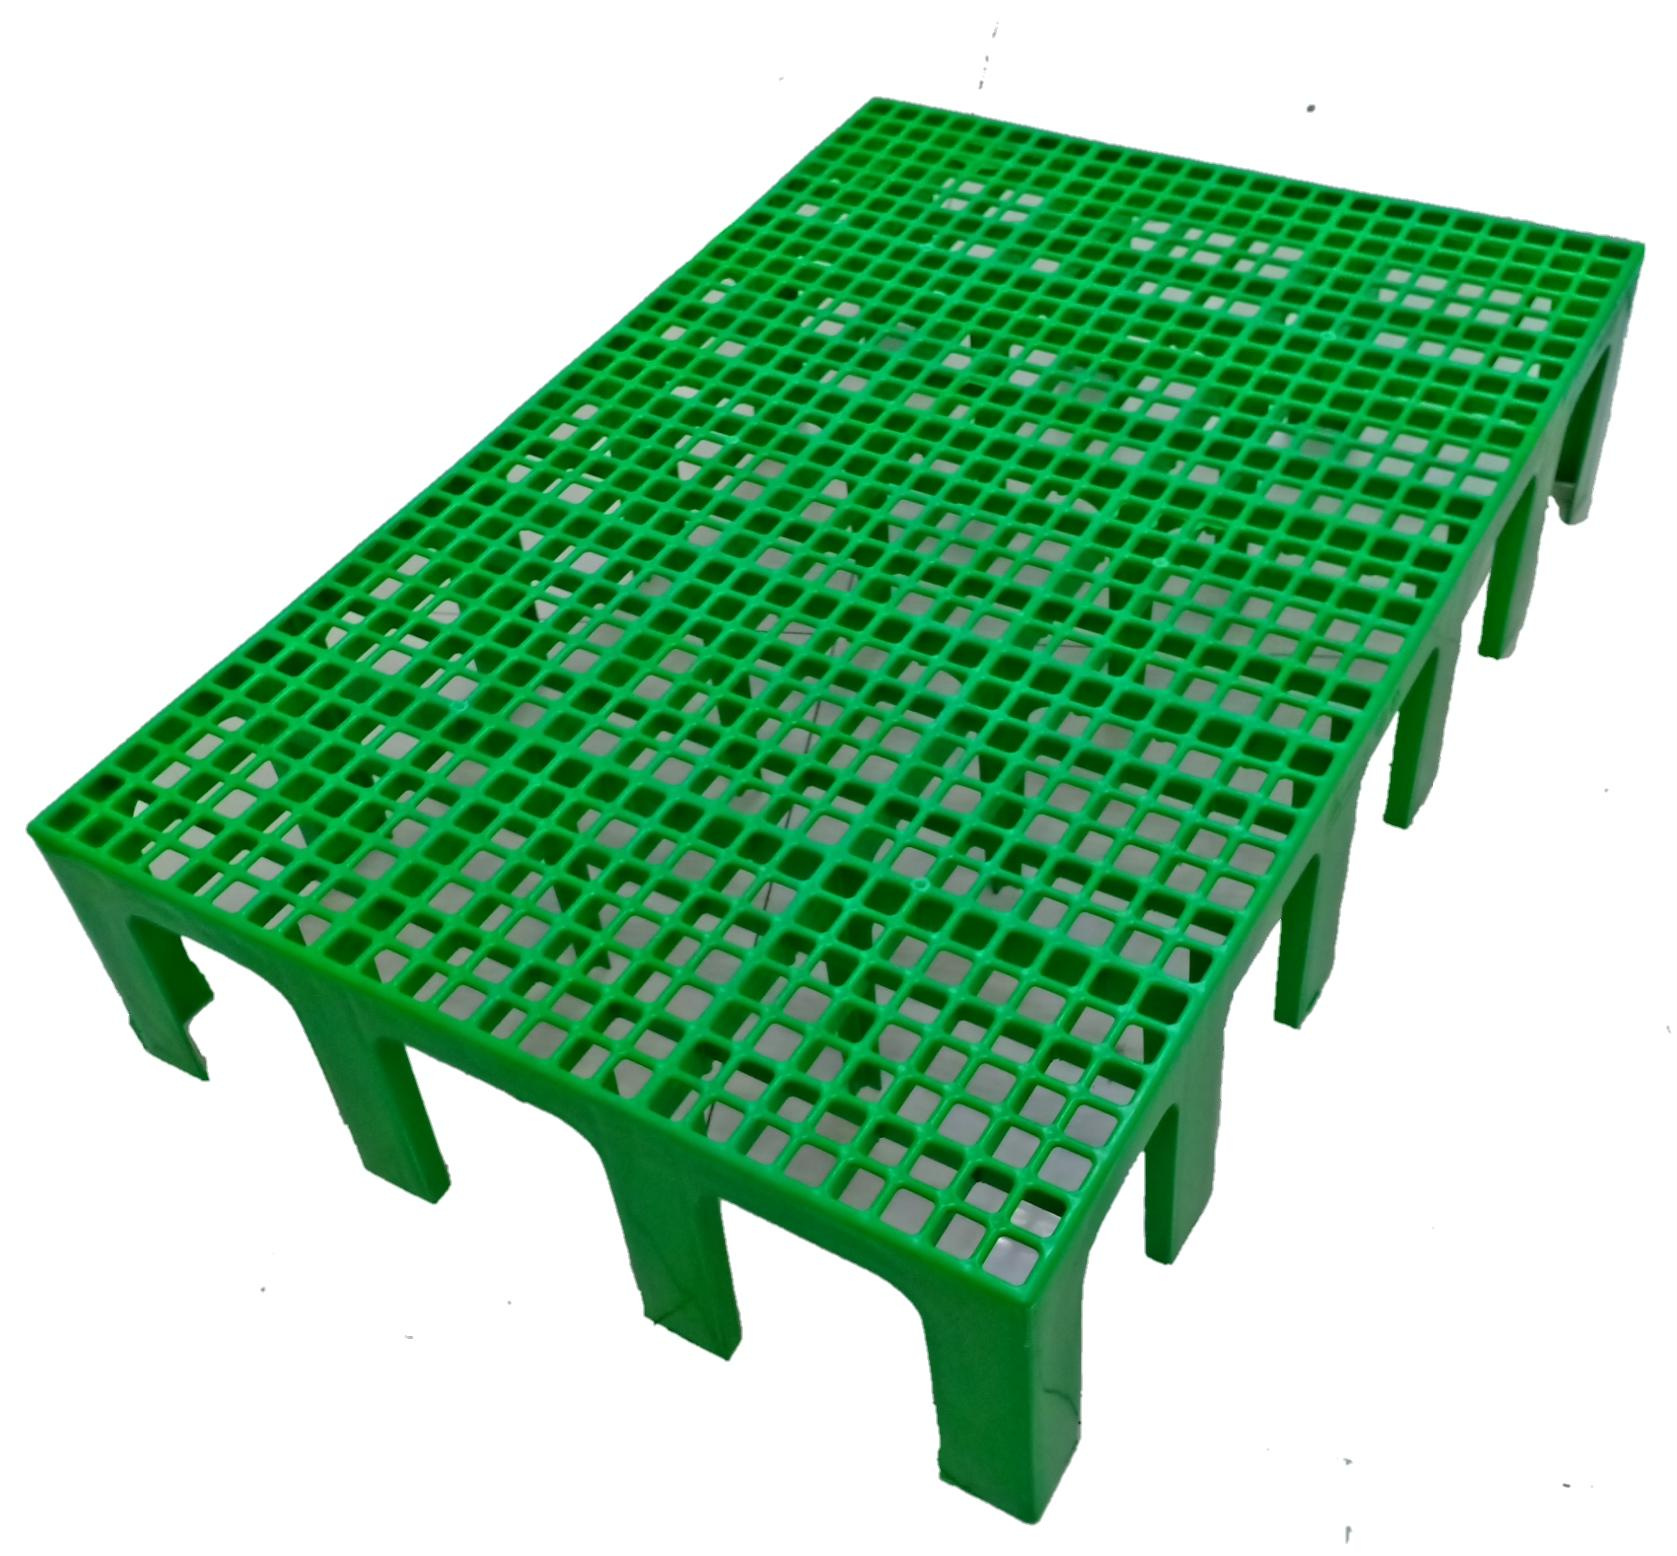 Plastic Matting With Stand Green 35inx24inx6in By Grandera.